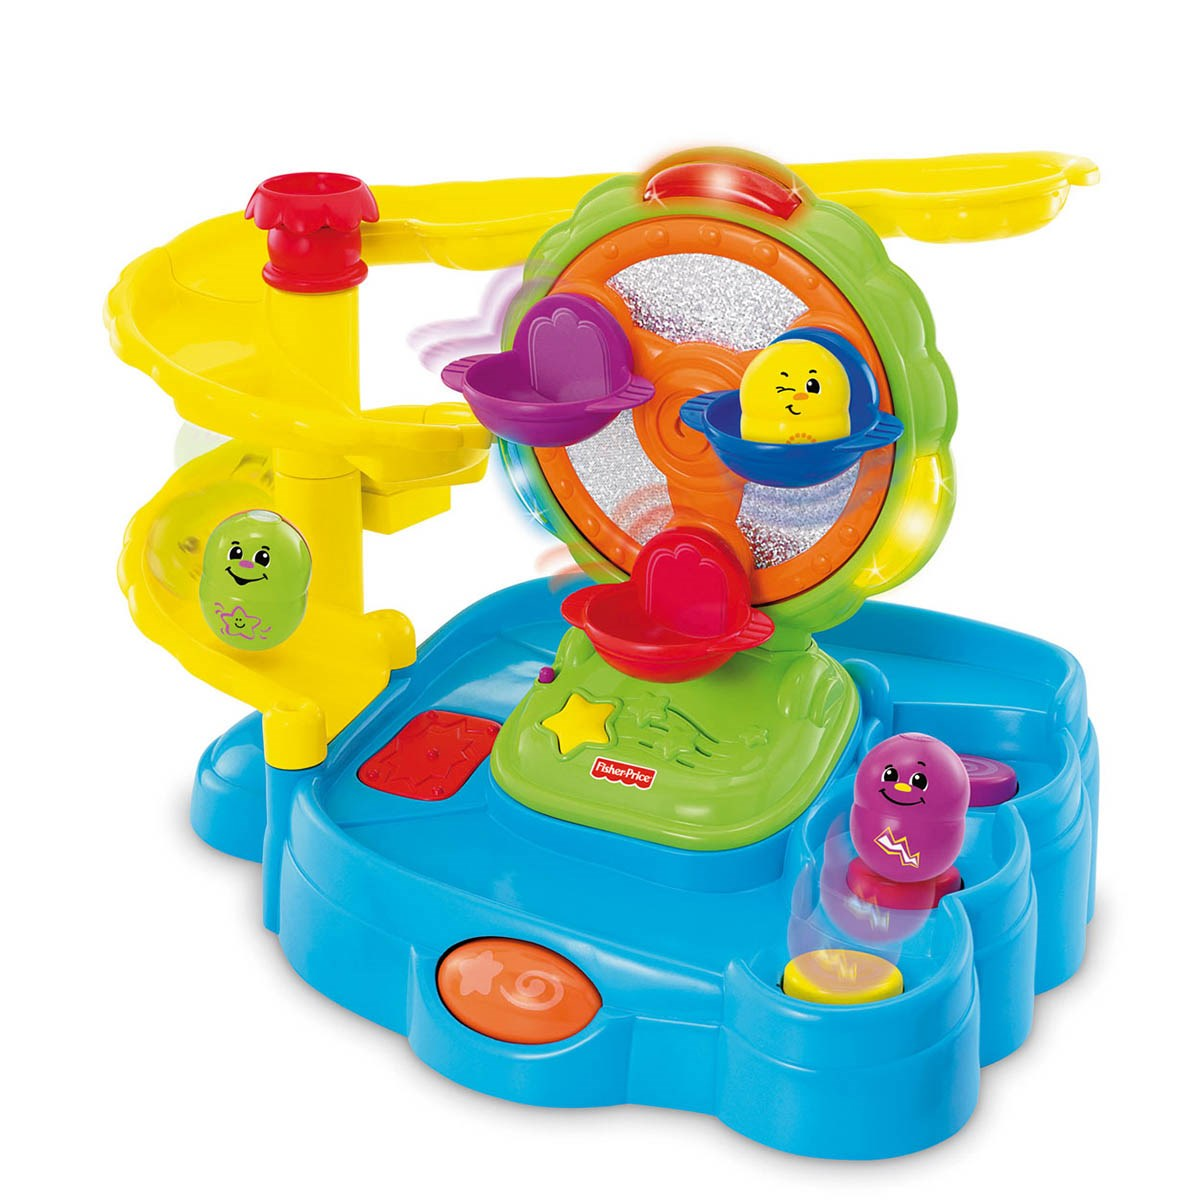 Do choi tha bong phat nhac Fisher Price w1910